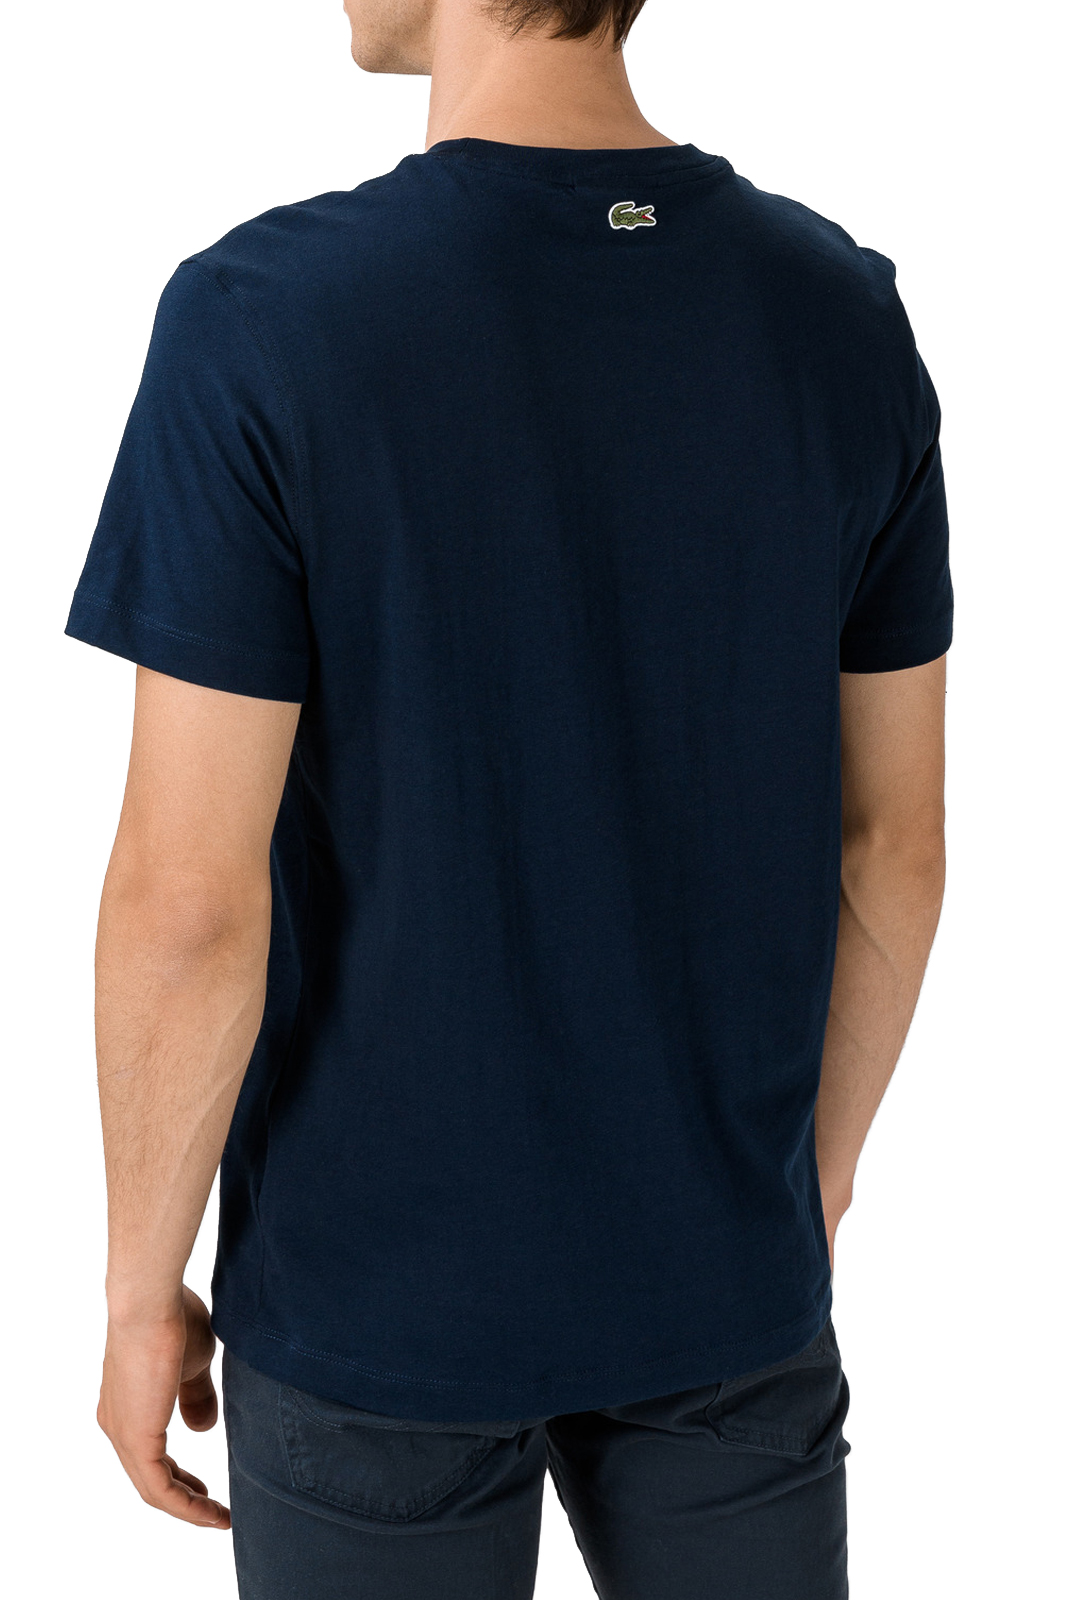 T-S manches courtes  Lacoste TH8804 00 166 NAVY